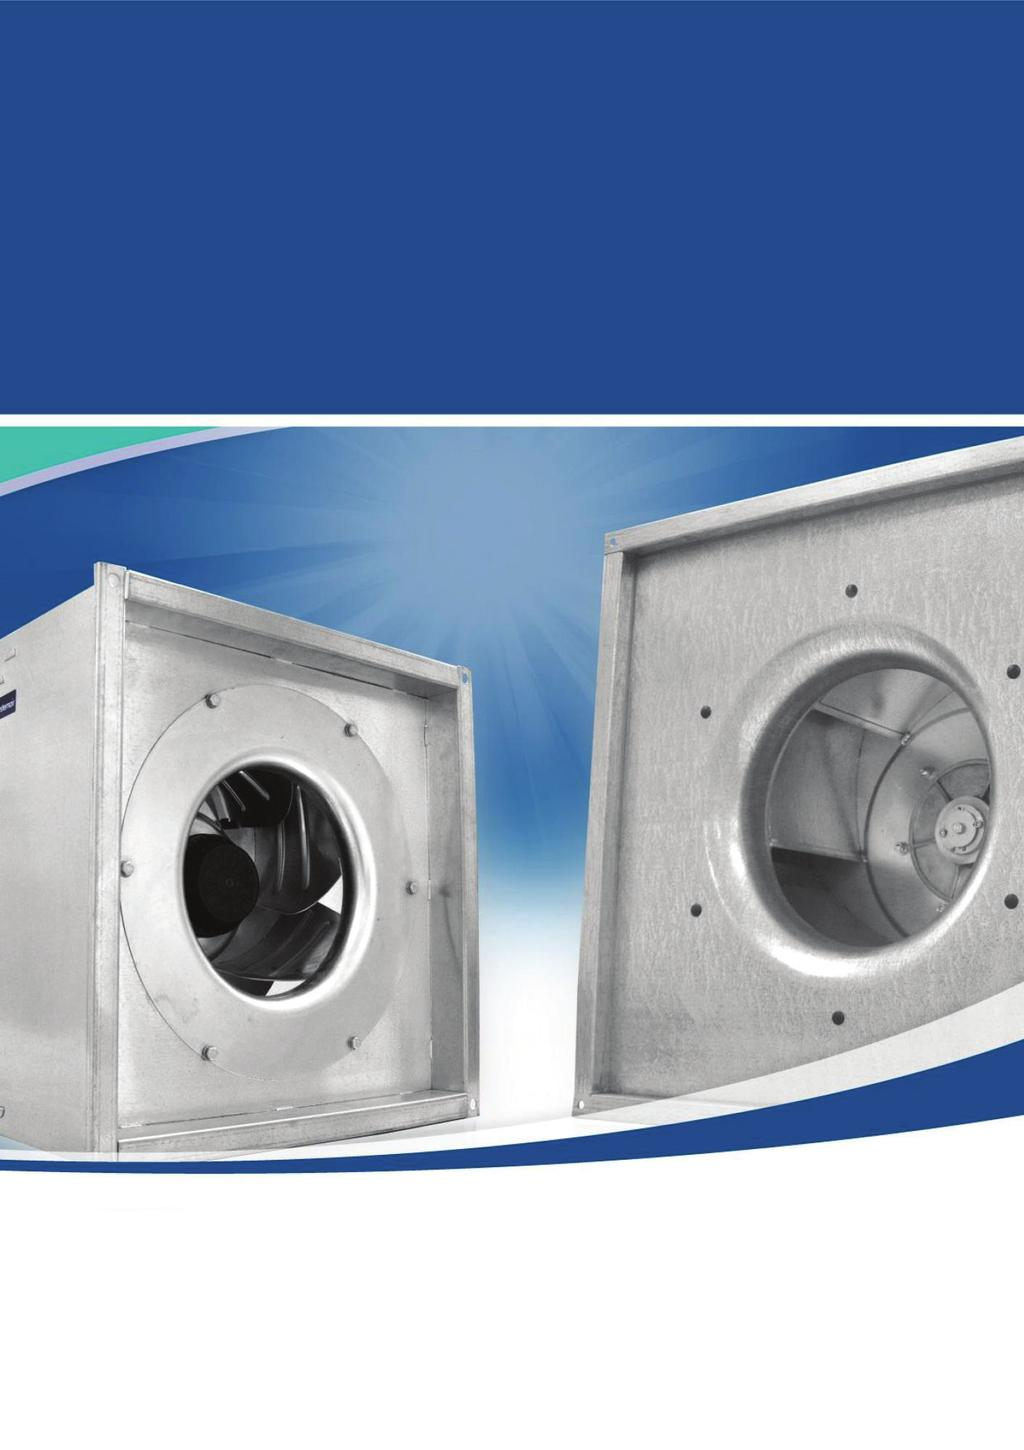 Fans Air Handling Units Air Distribution Products Fire Safety Air Curtains and heating Products Tunnel Fans The Straight Way Rectangular Cabinet Fan Systemair India Pvt. Ltd.